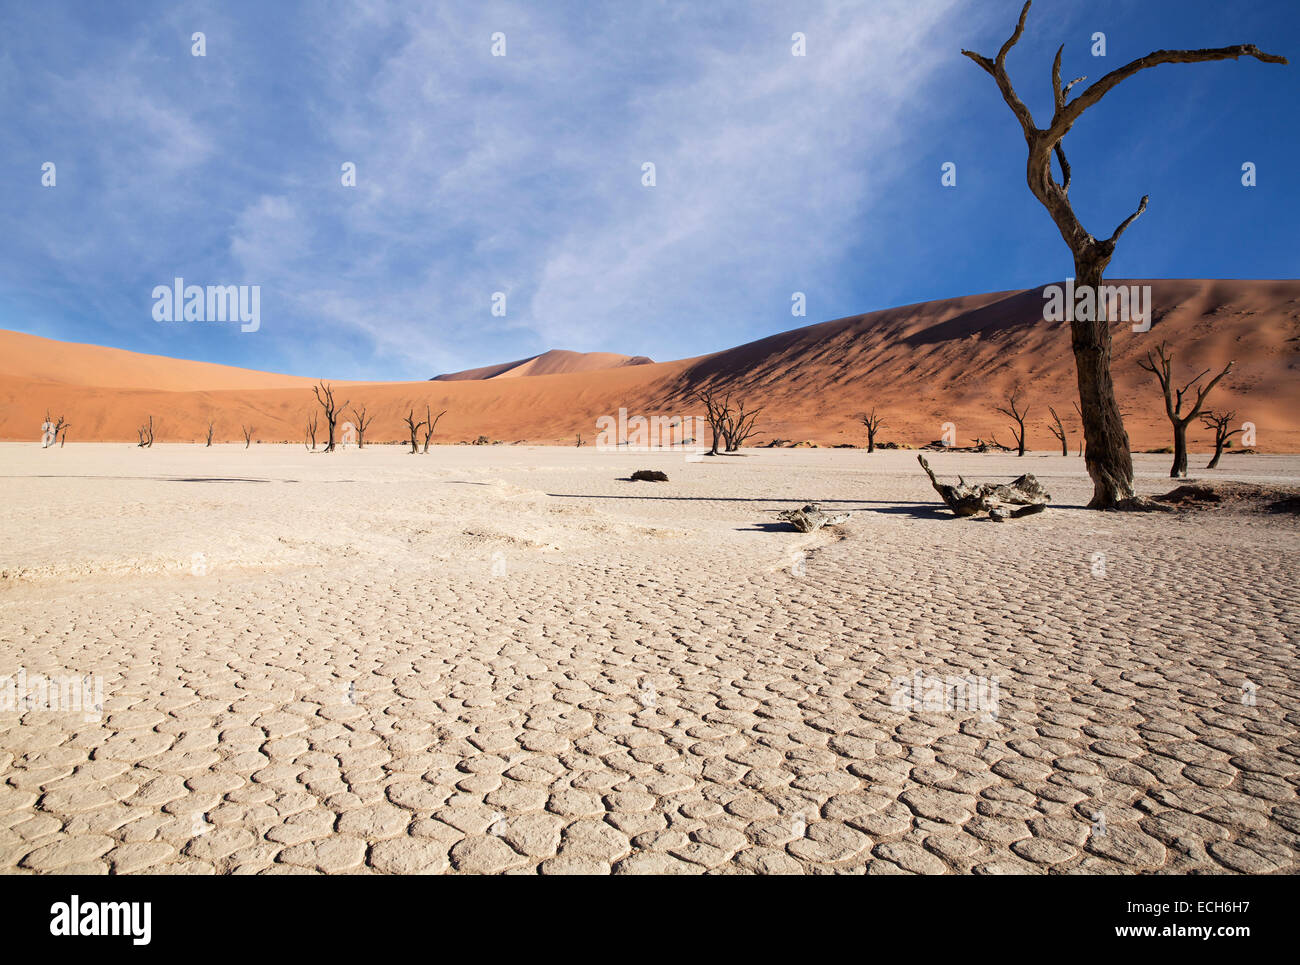 Dead trees and parched earth, Deadvlei, Sossusvlei, Namibia - Stock Image